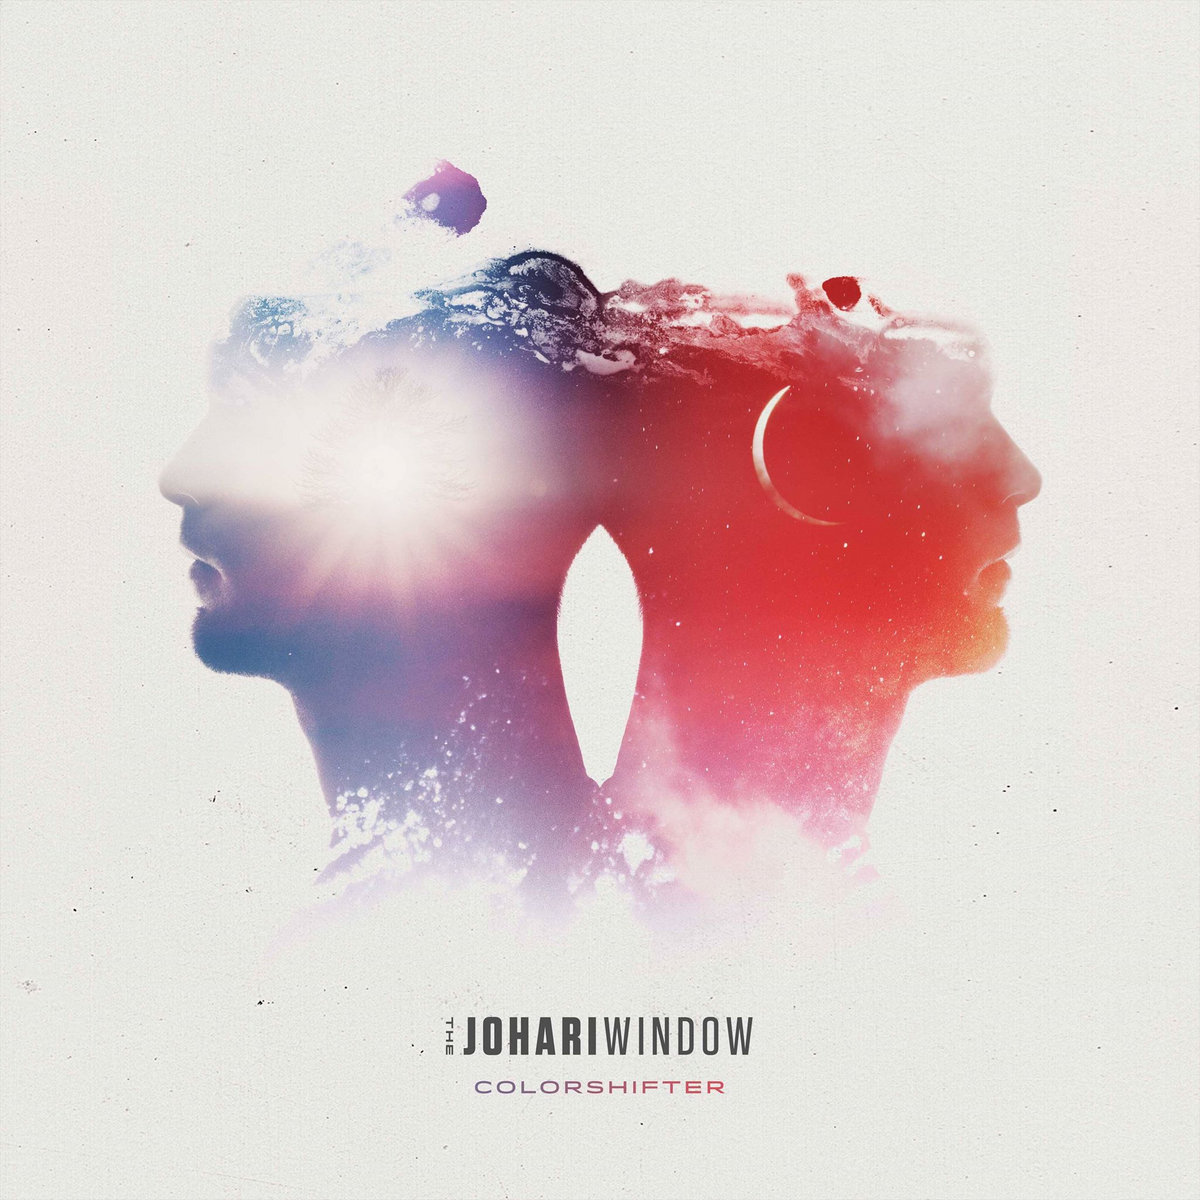 The Johari Window - Colorshifter (2018)